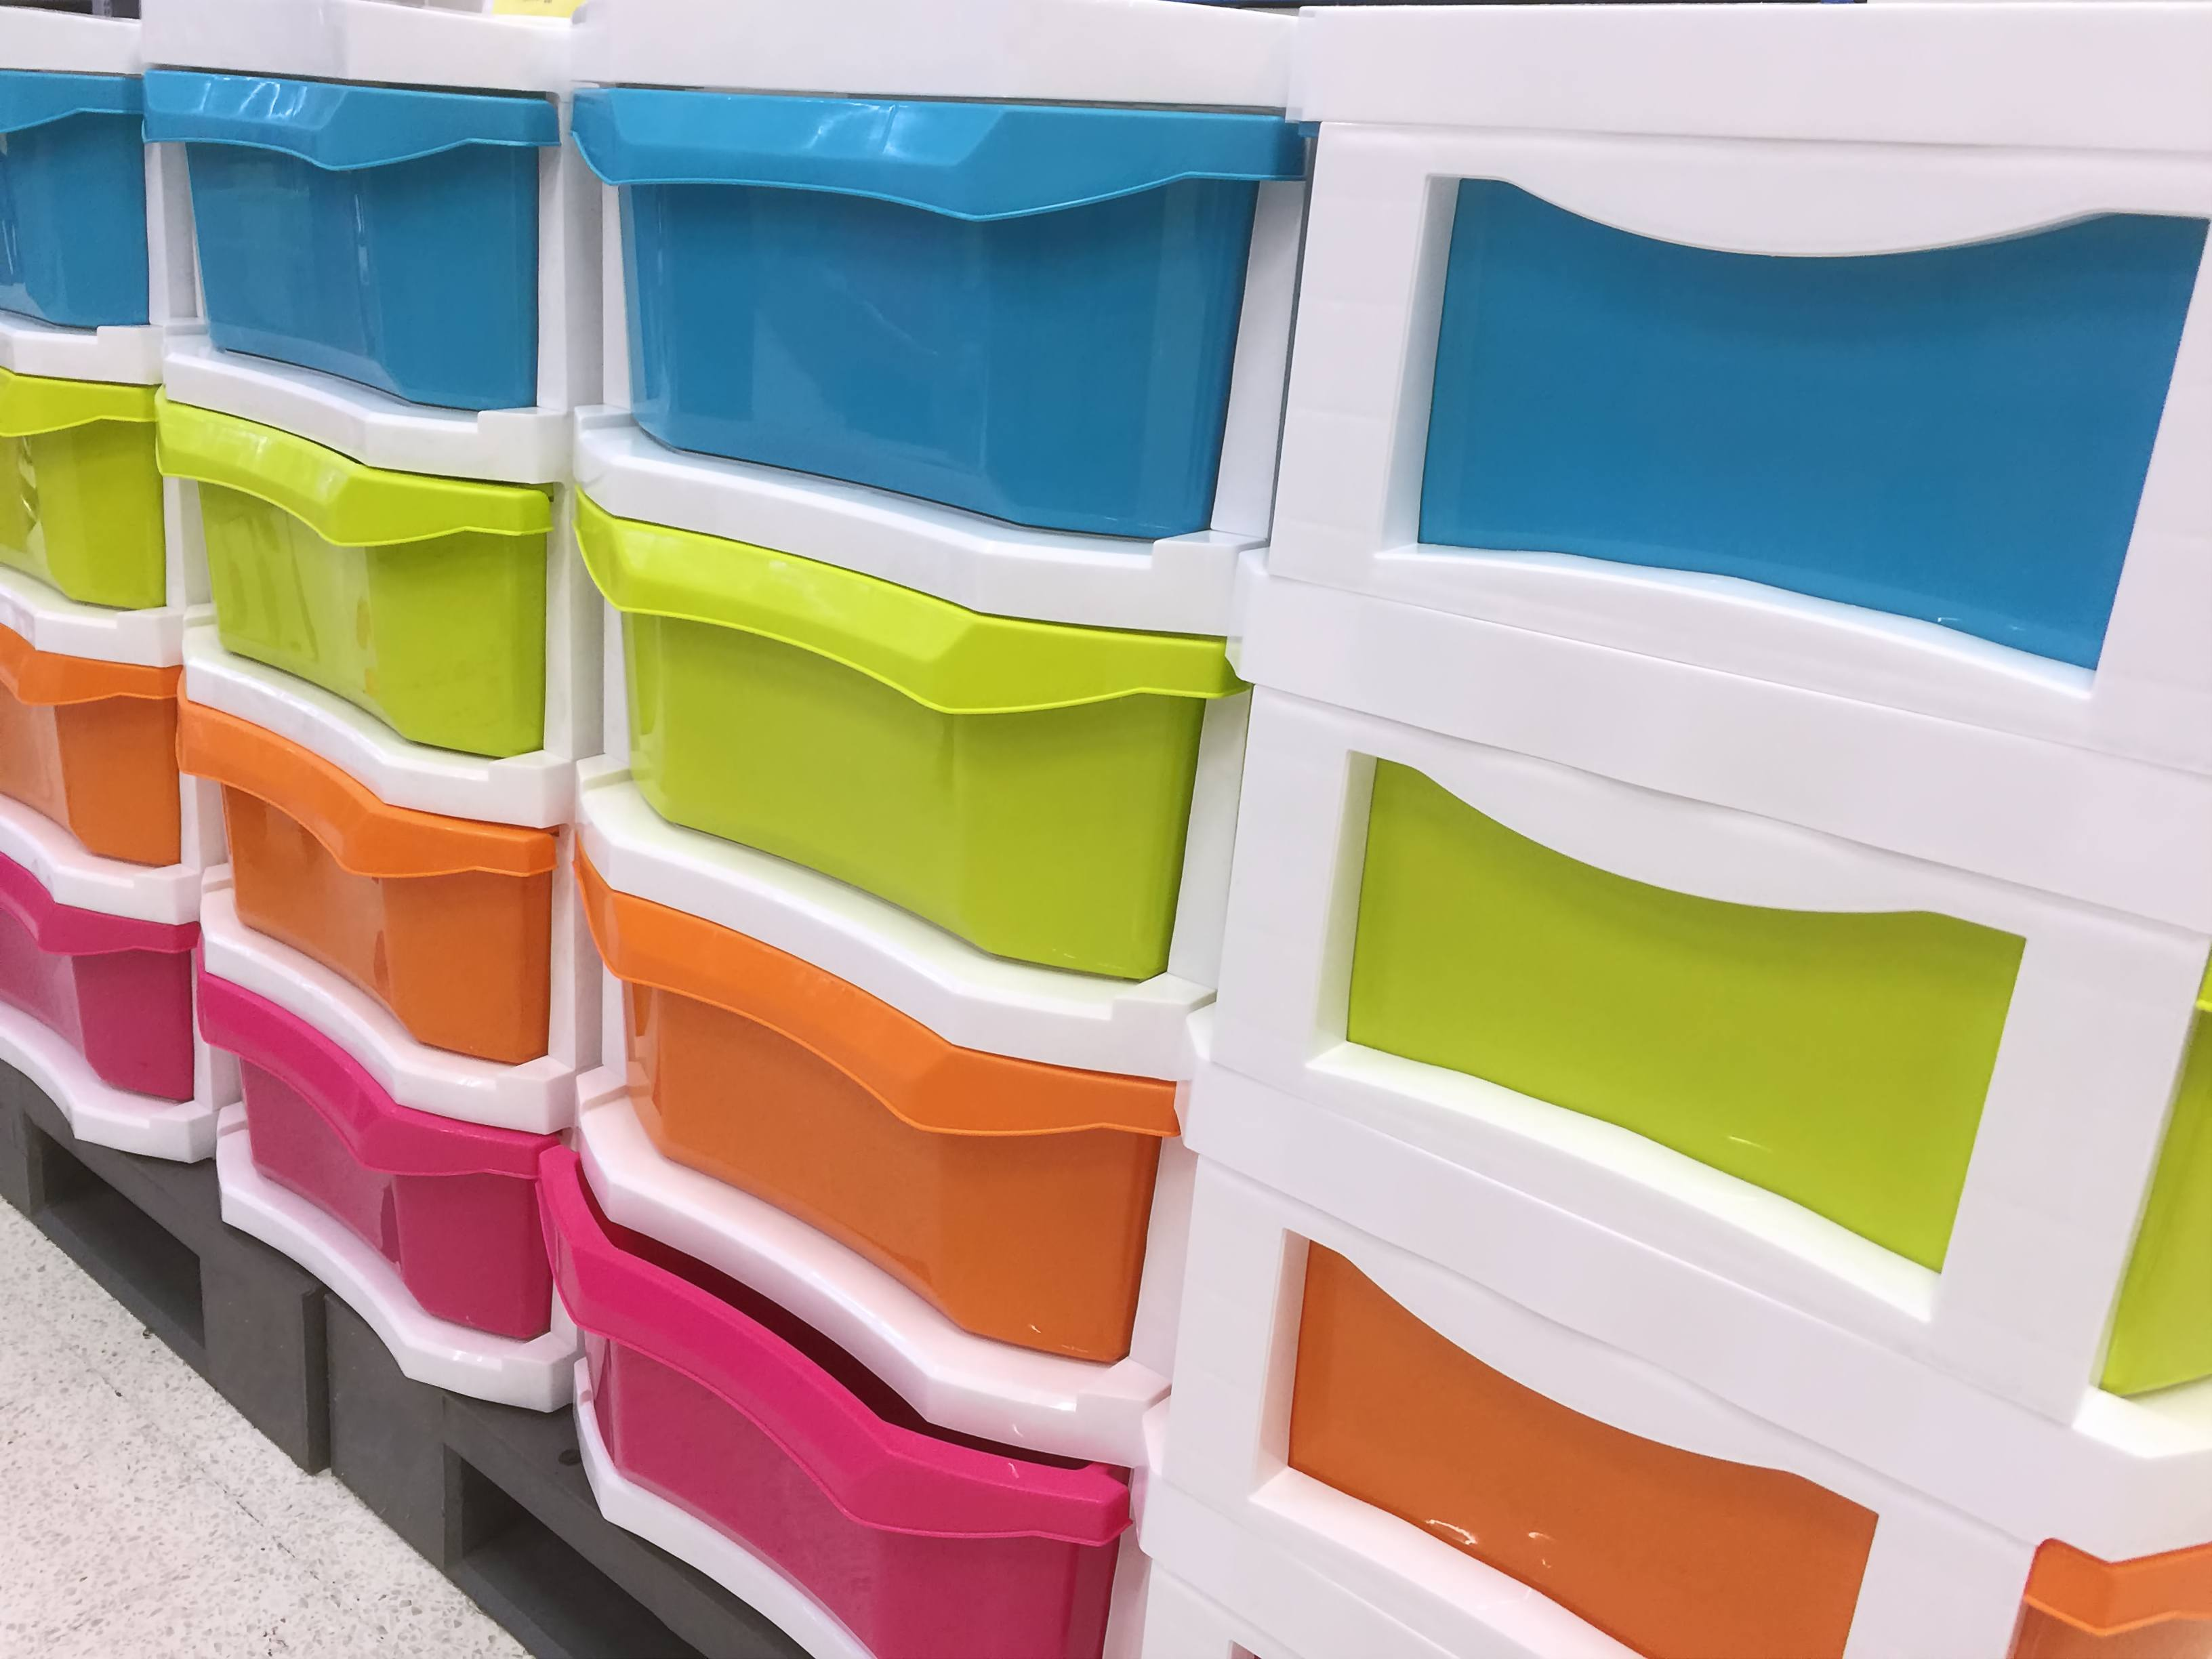 Plastic storage drawers